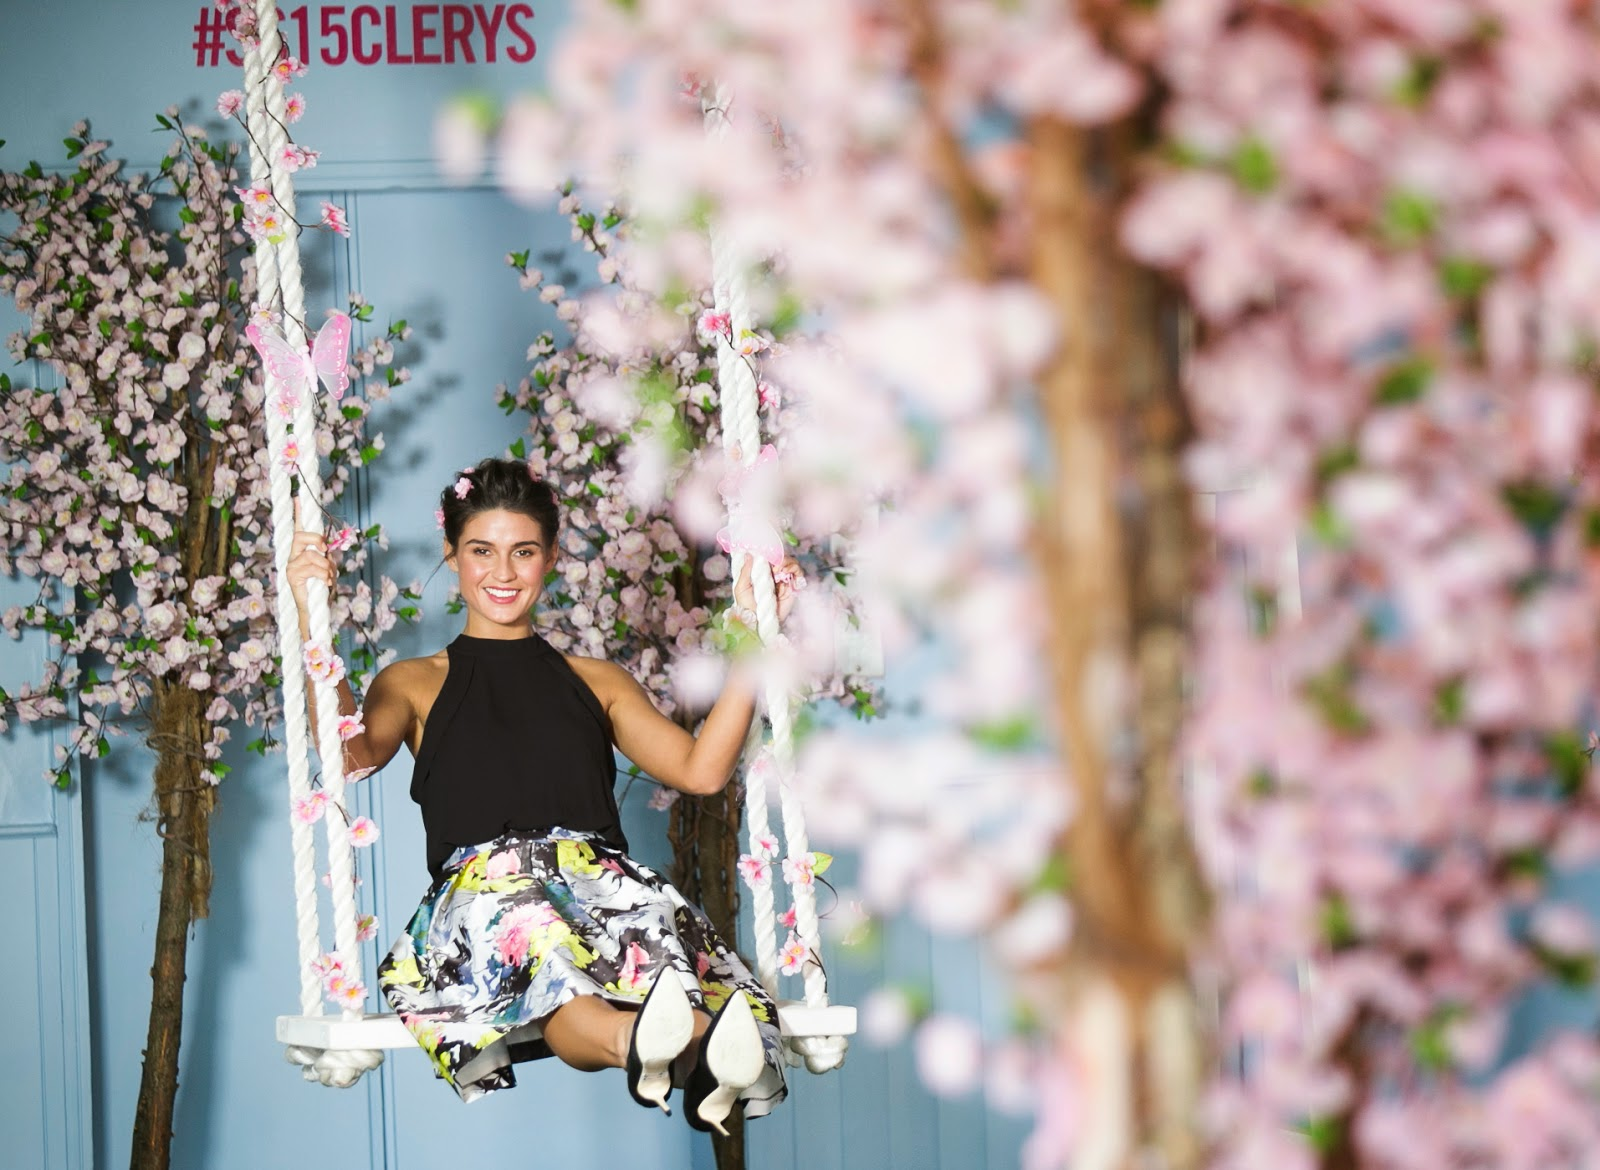 Swing into Spring #SS15Clerys